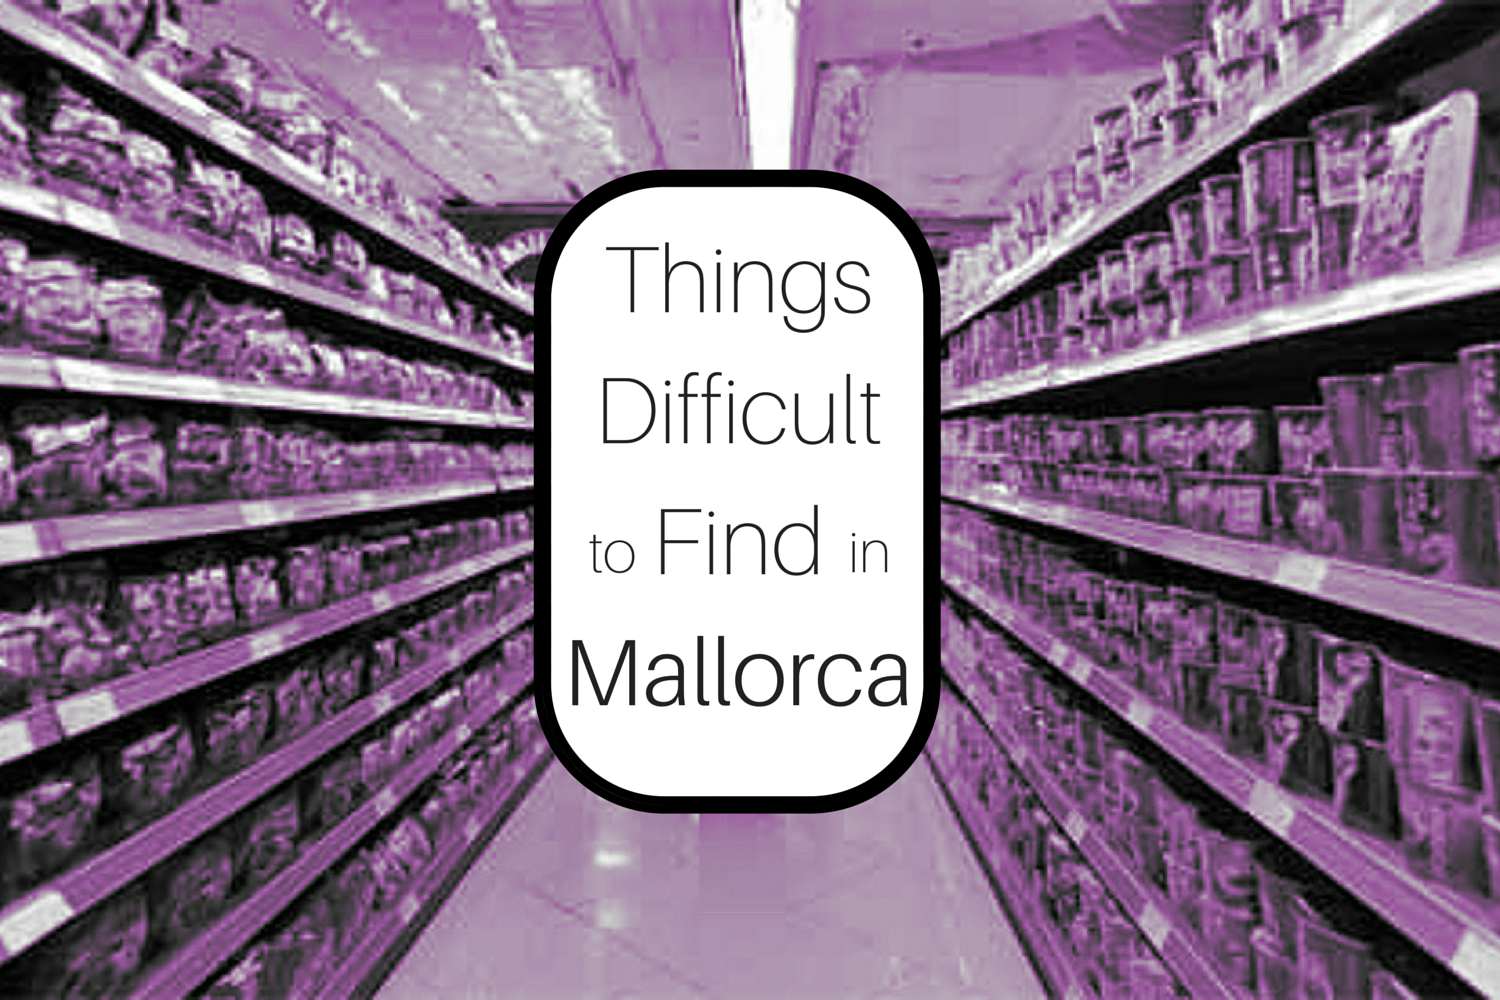 Difficult to Find in Mallorca